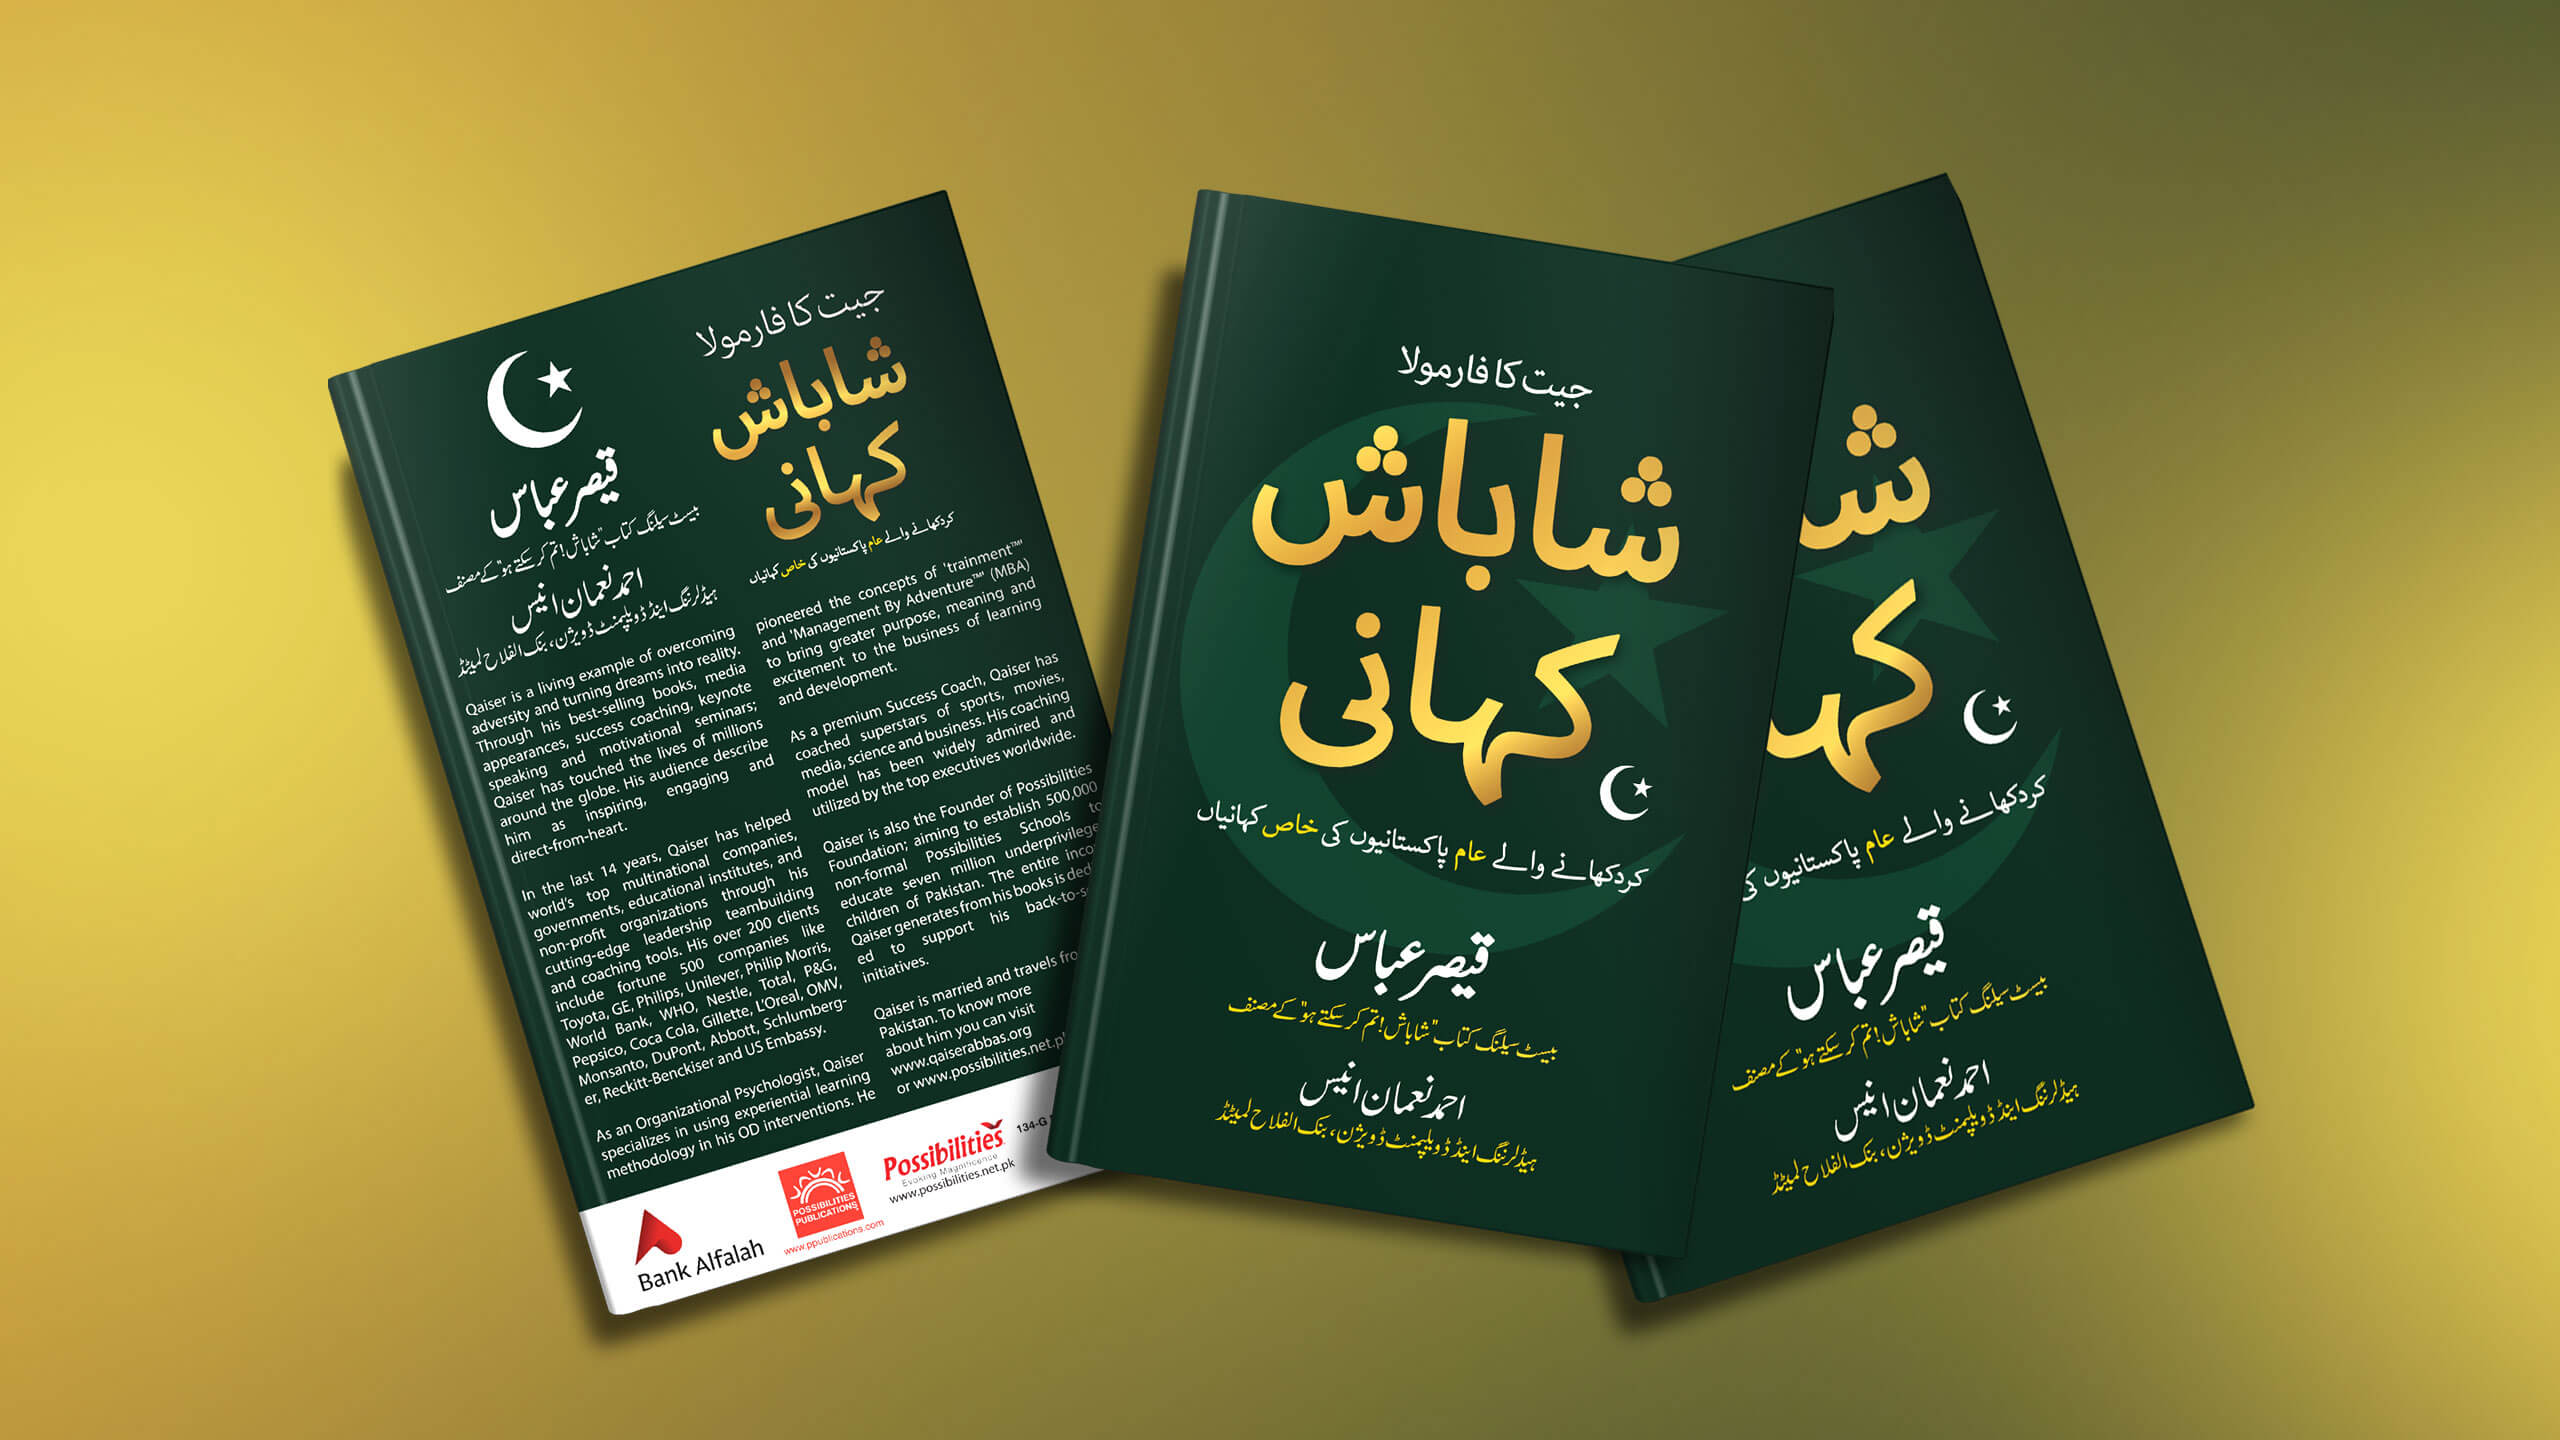 shabash kahani book title and campaign designed by stocktoc